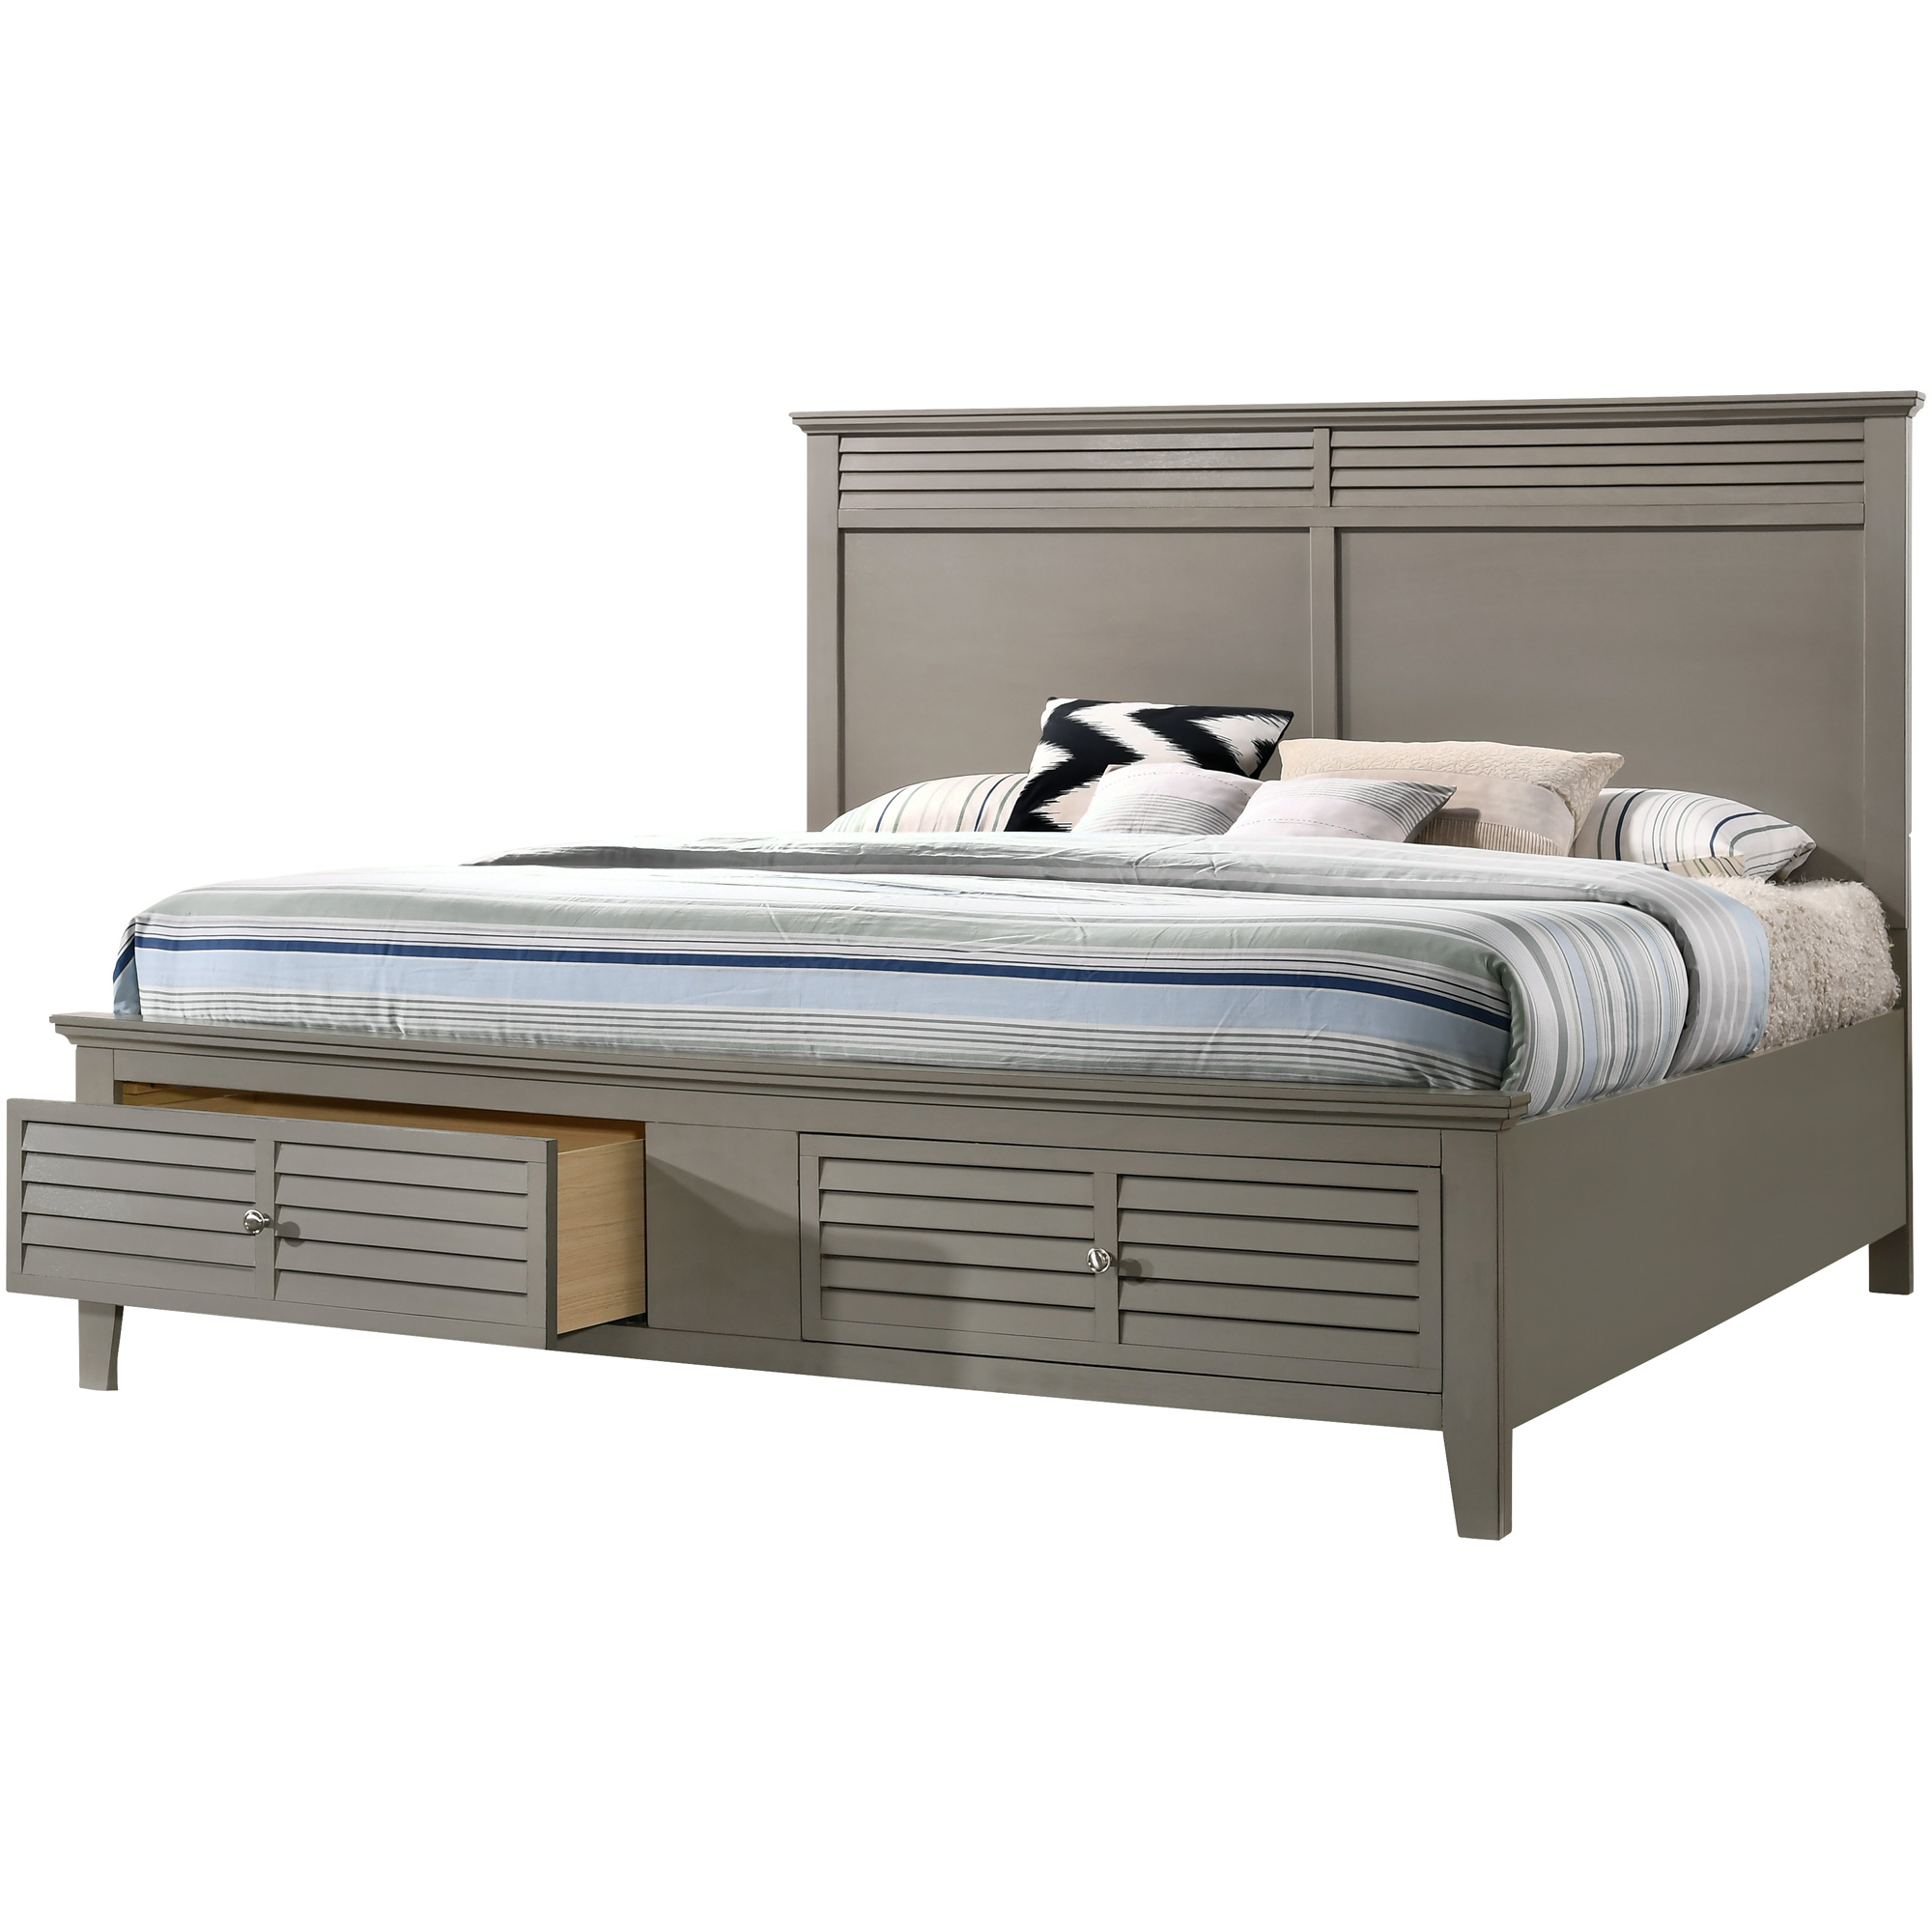 Lifestyle Enterprise | Del Mar Gray Queen Storage Bed